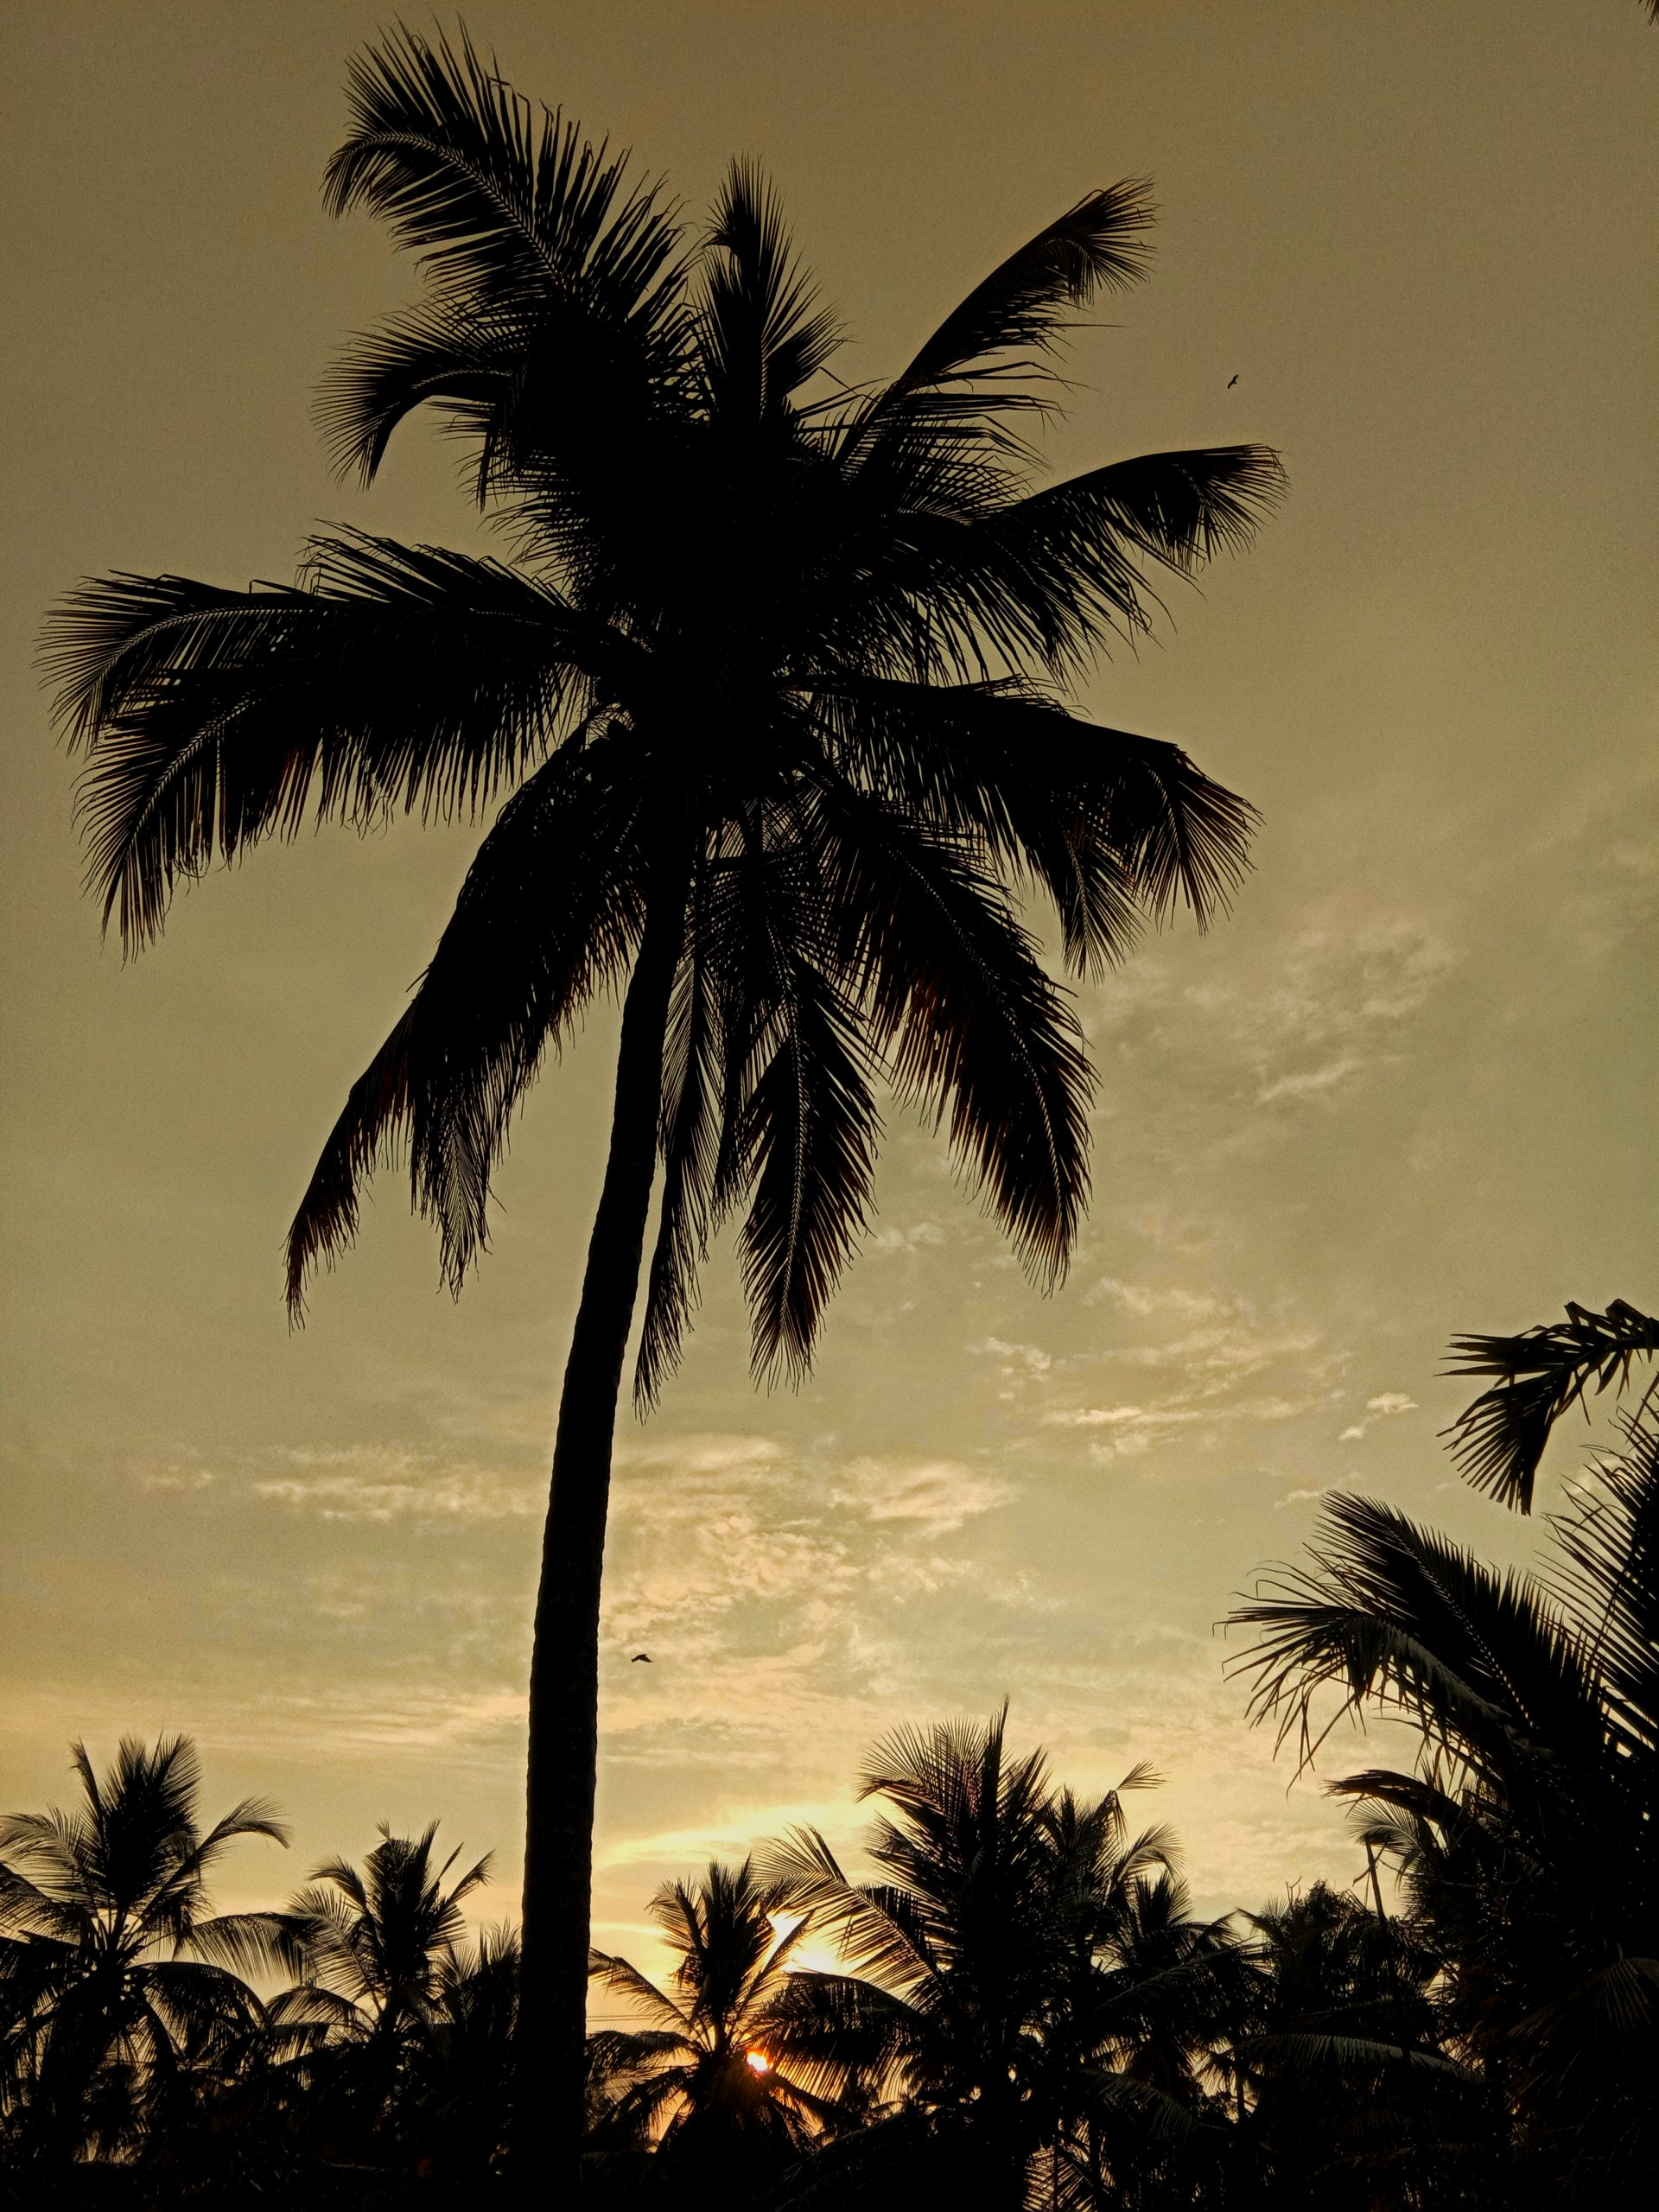 A coconut tree during evening